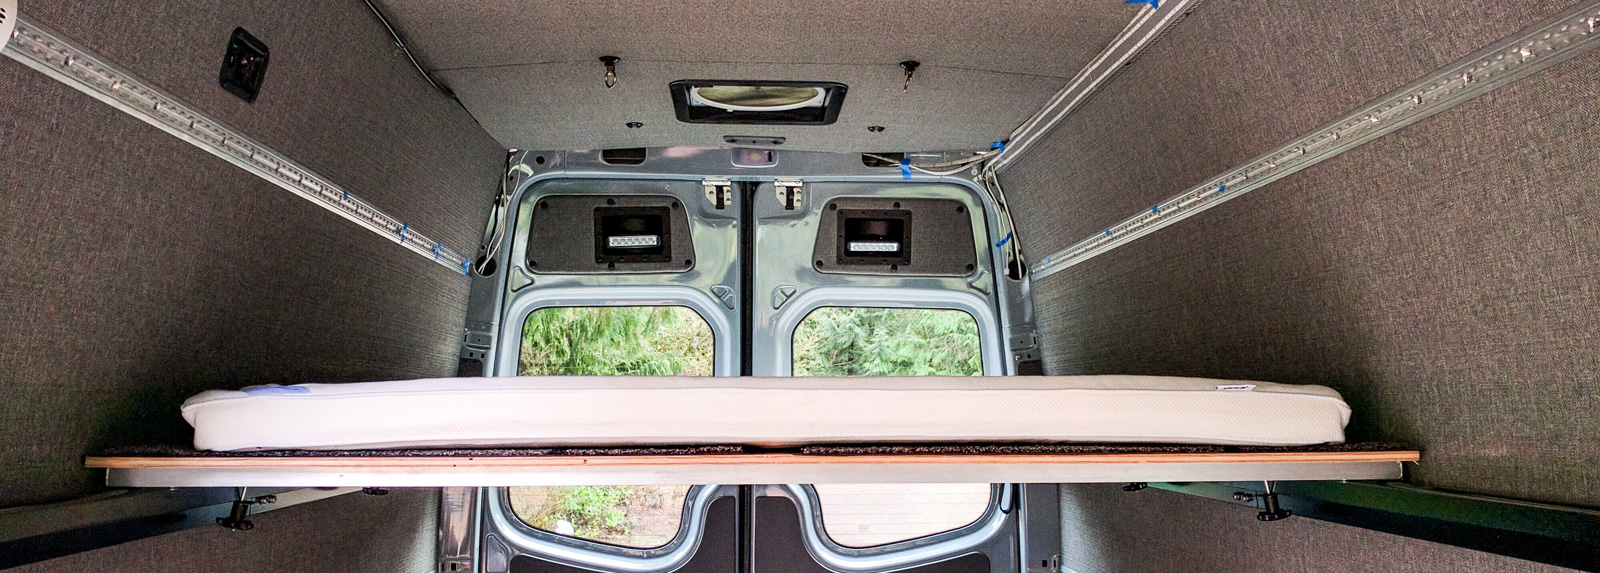 Photos Of The Escape Pod Sprinter Adventure Van